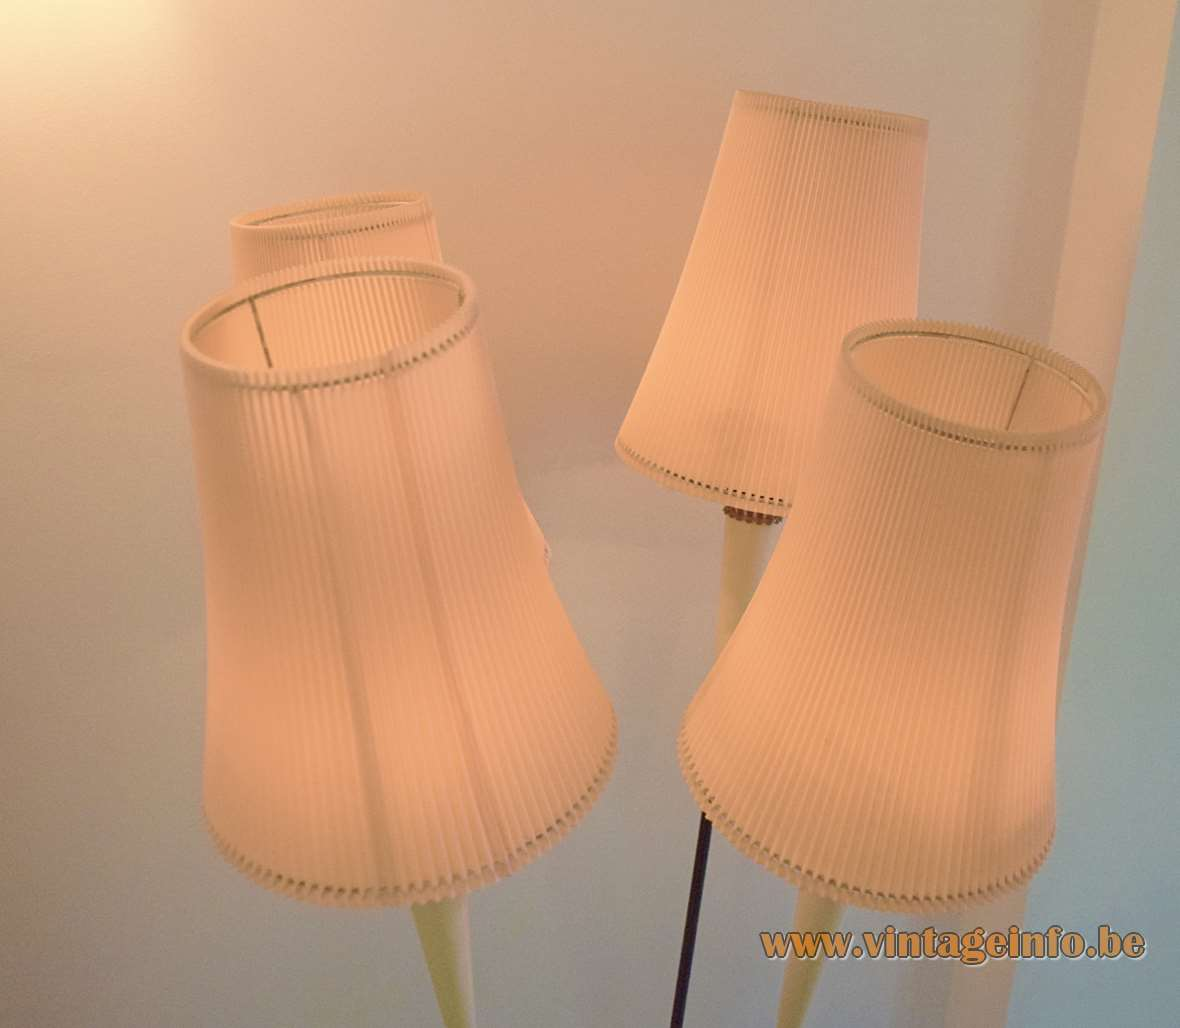 1950s Italian Celluloid Floor Lamp